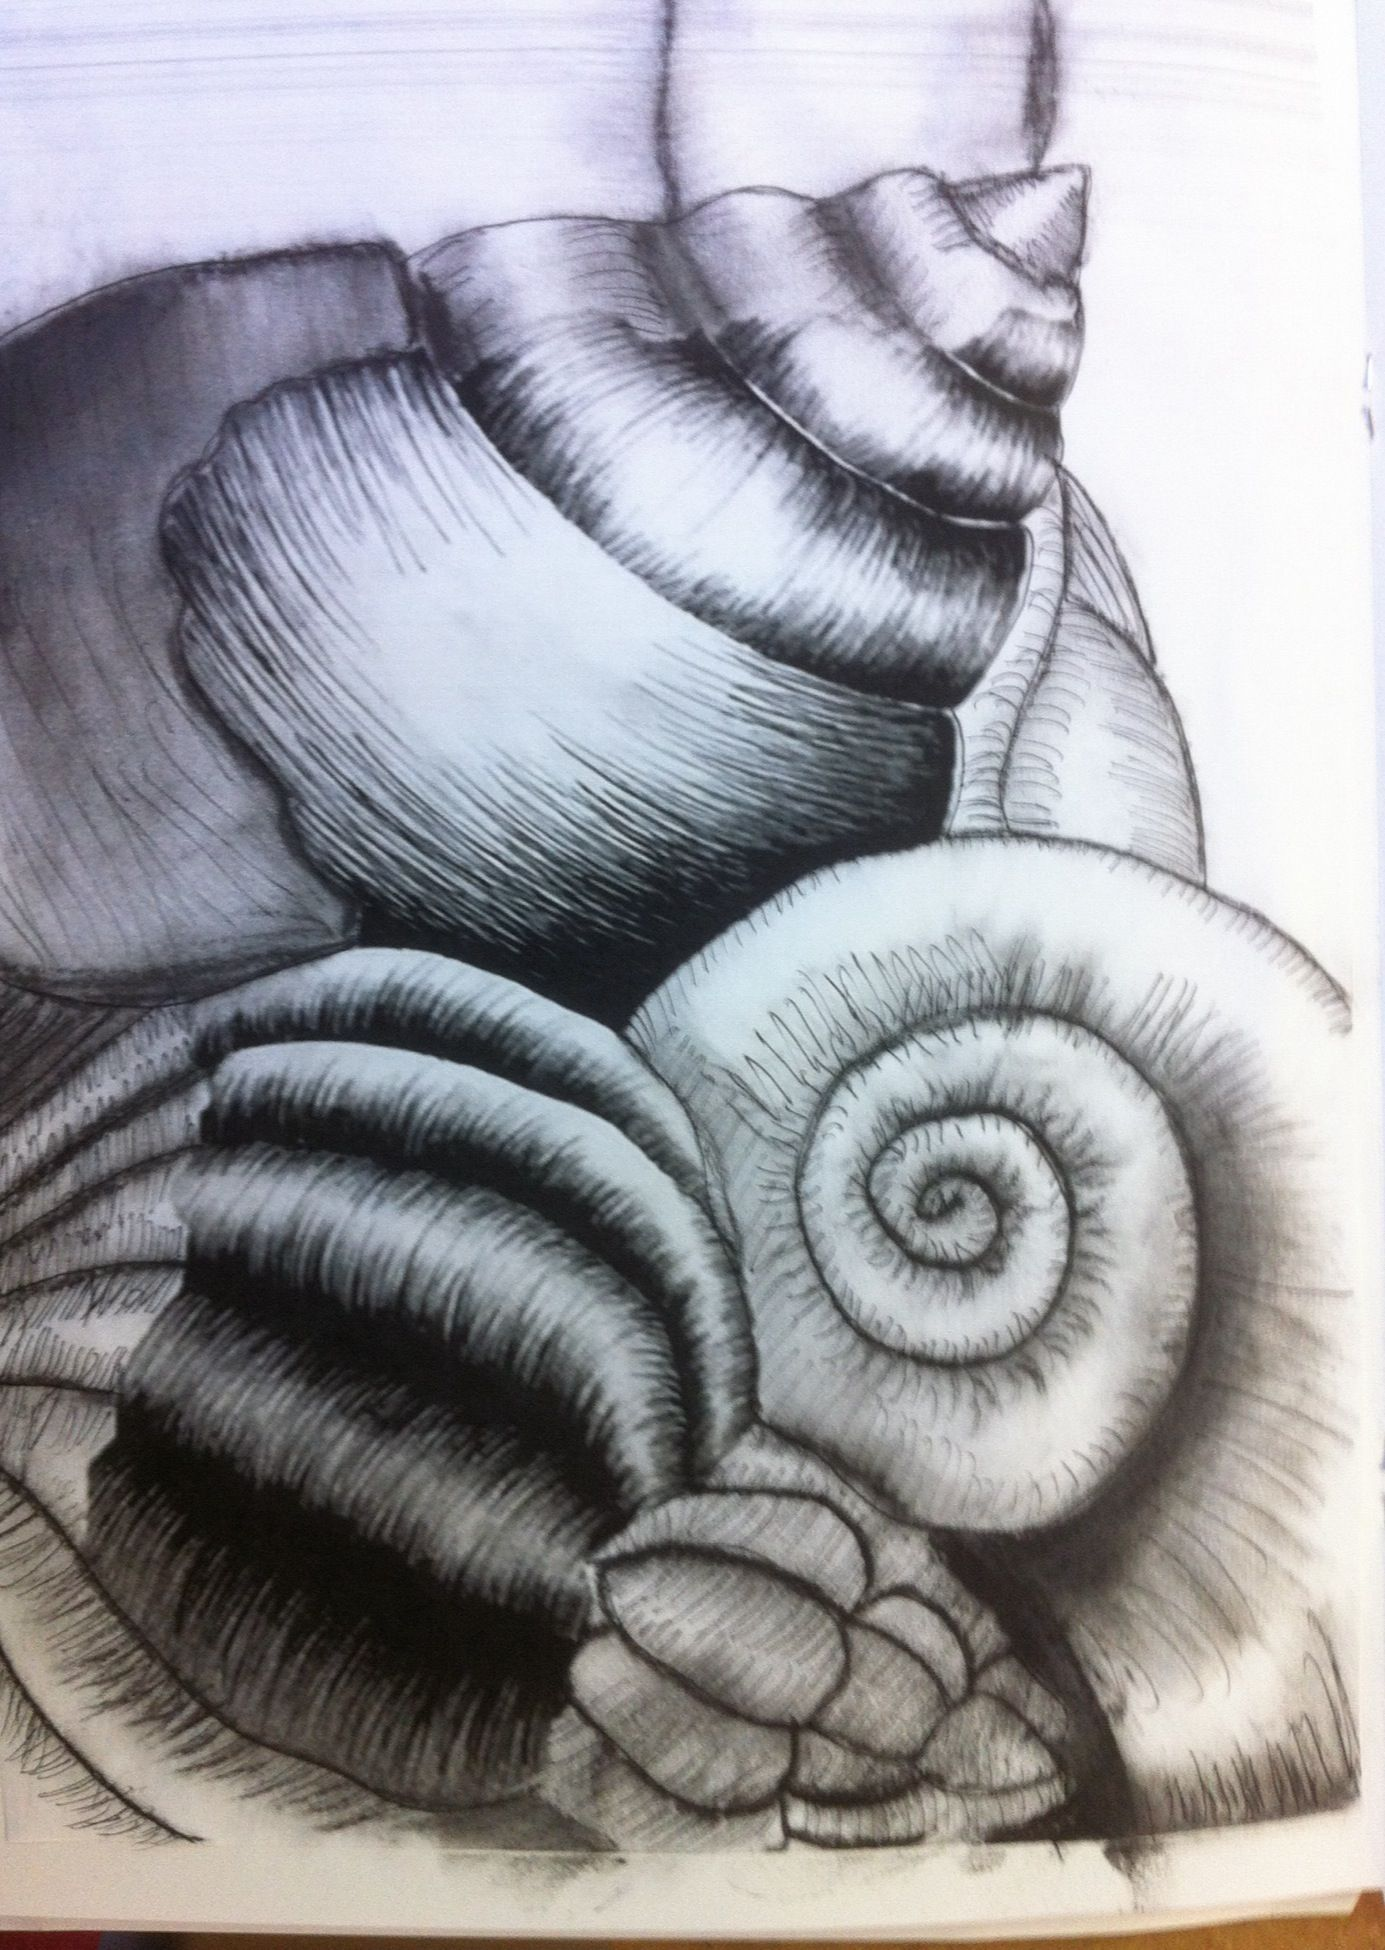 Pen Drawing If Shells By Y10 Student In 2019 Drawings